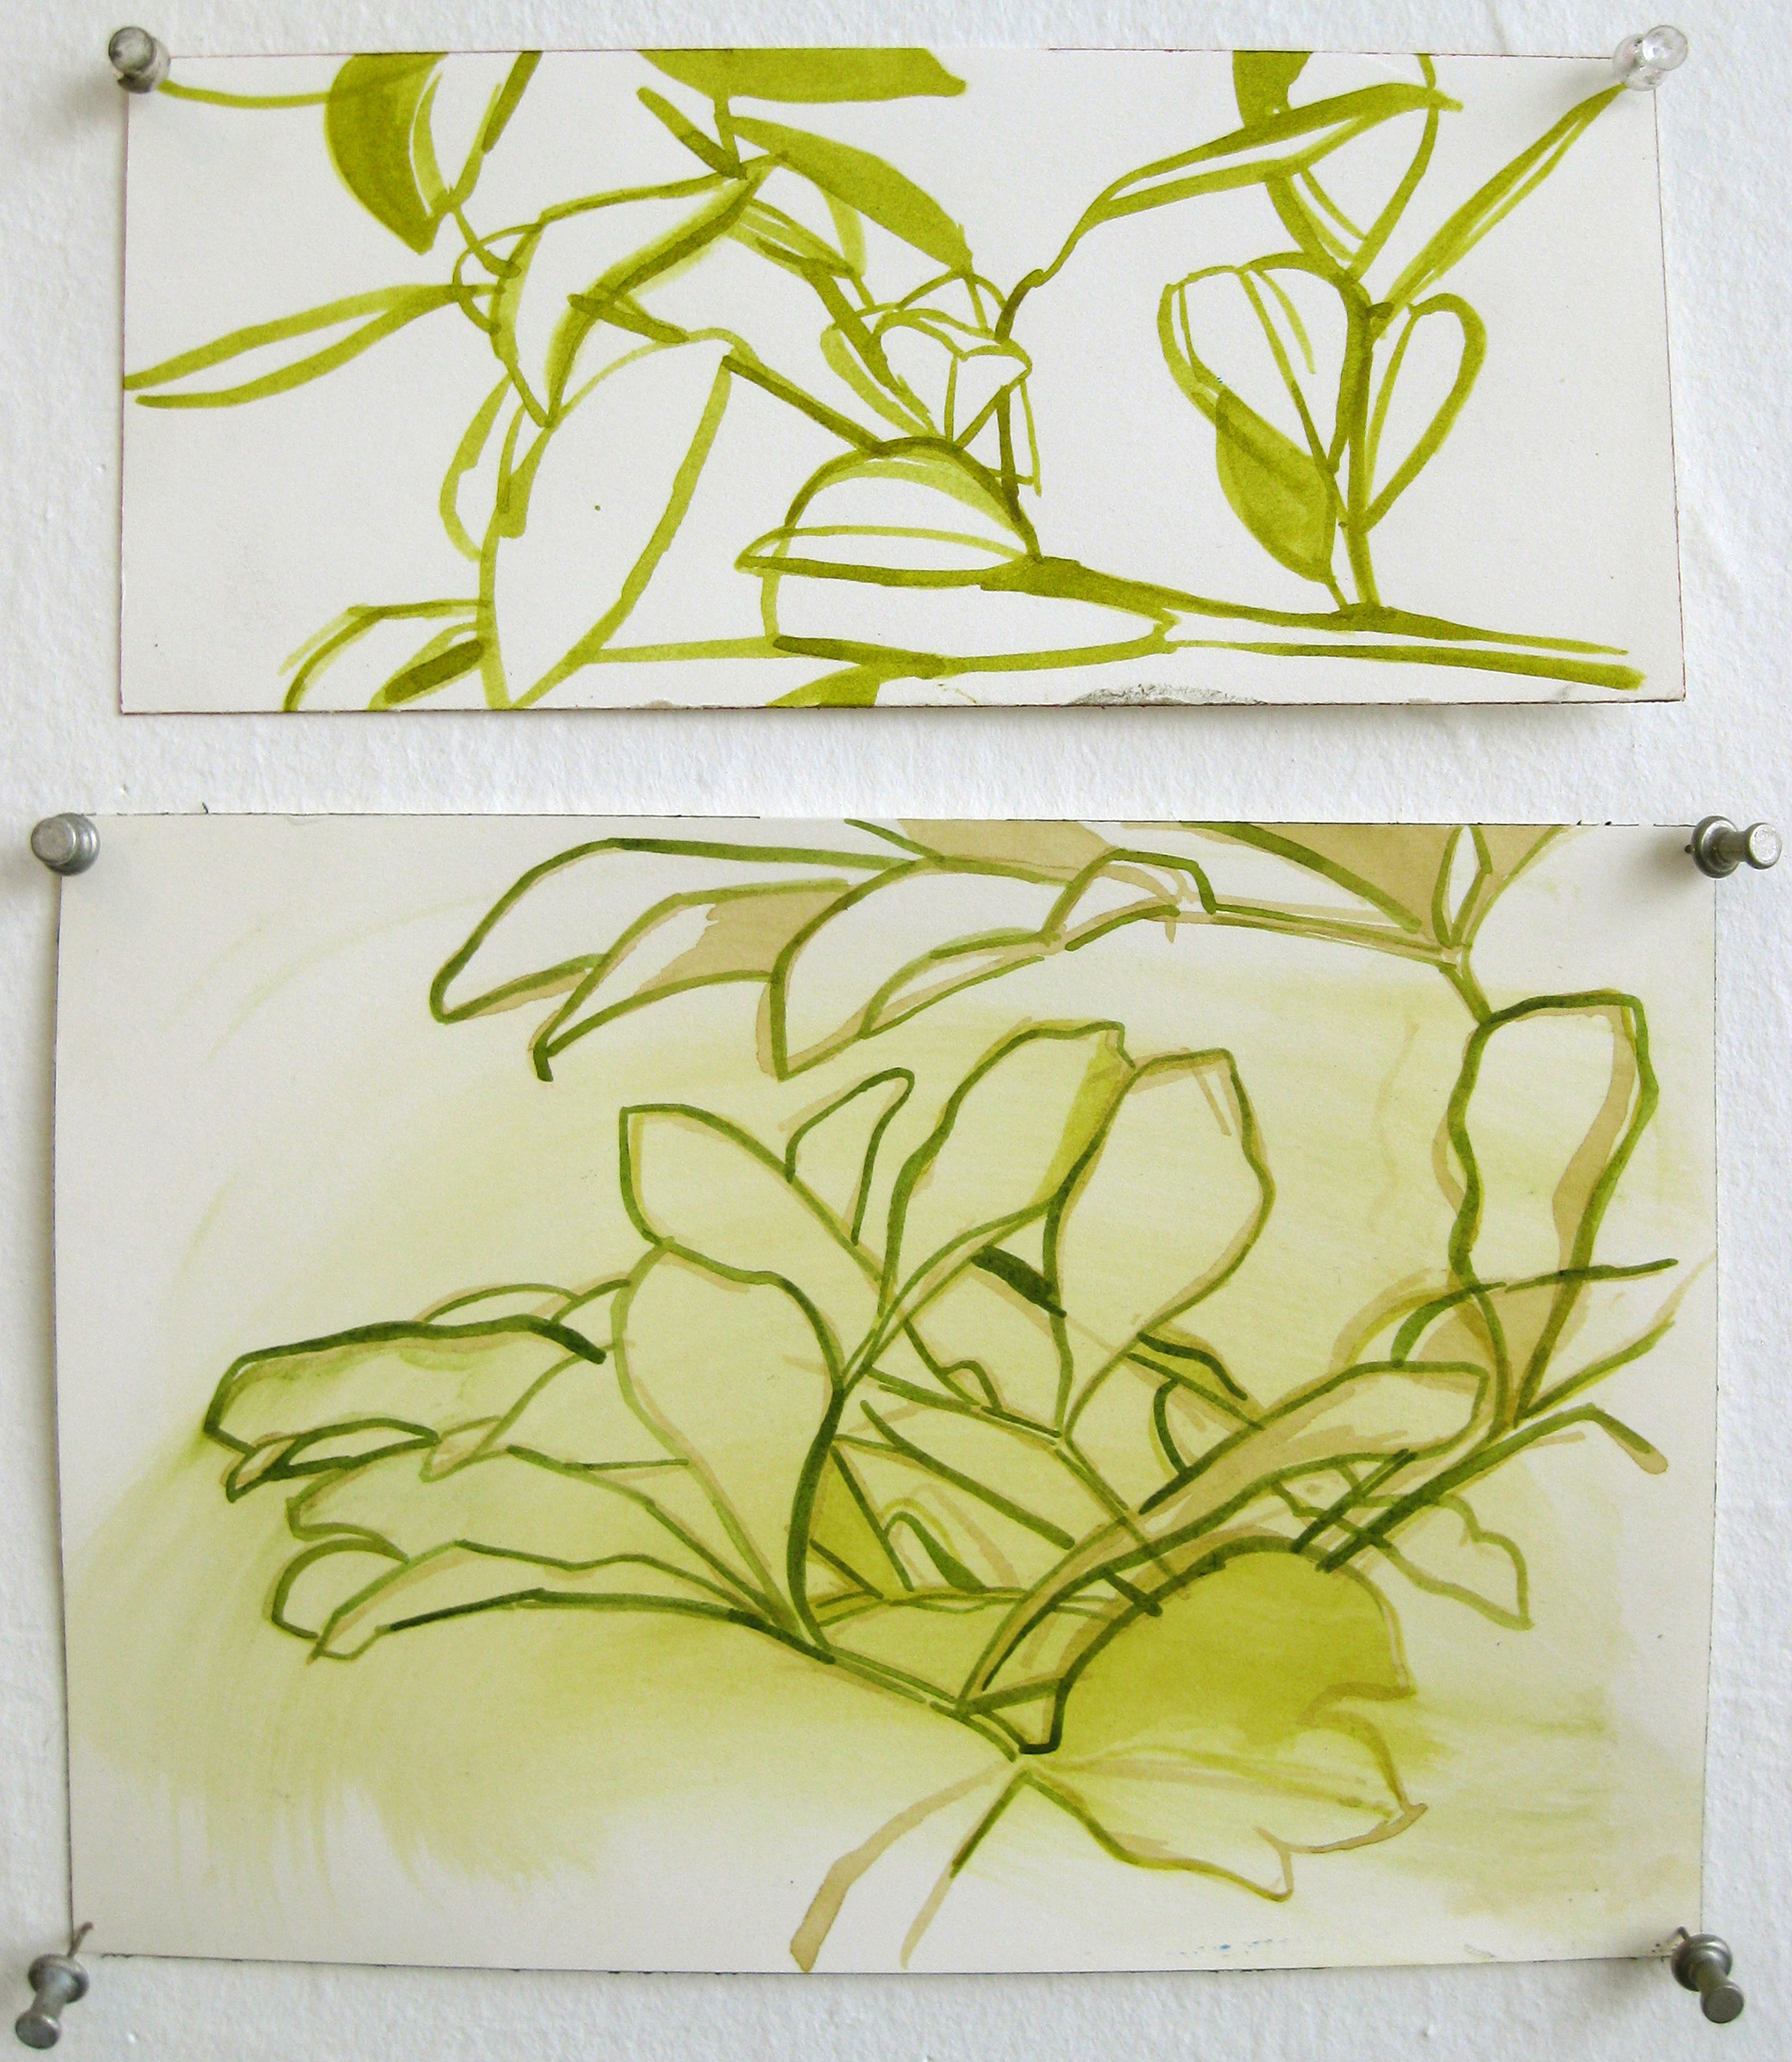 h20-leaf-drawings